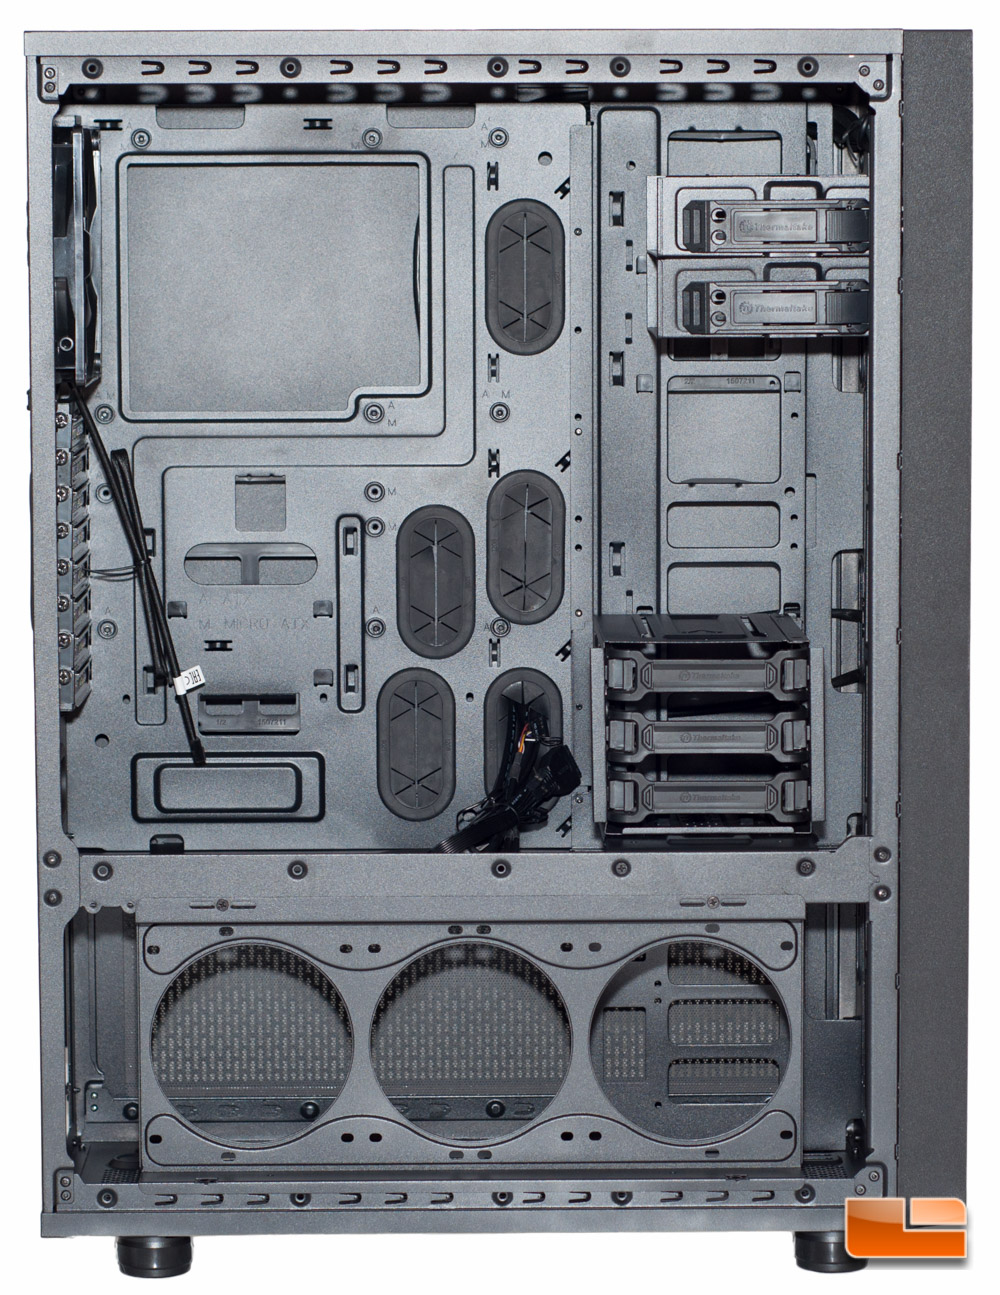 Thermaltake Core X71 5 thermaltake core x71 full tower chassis review page 3 of 5